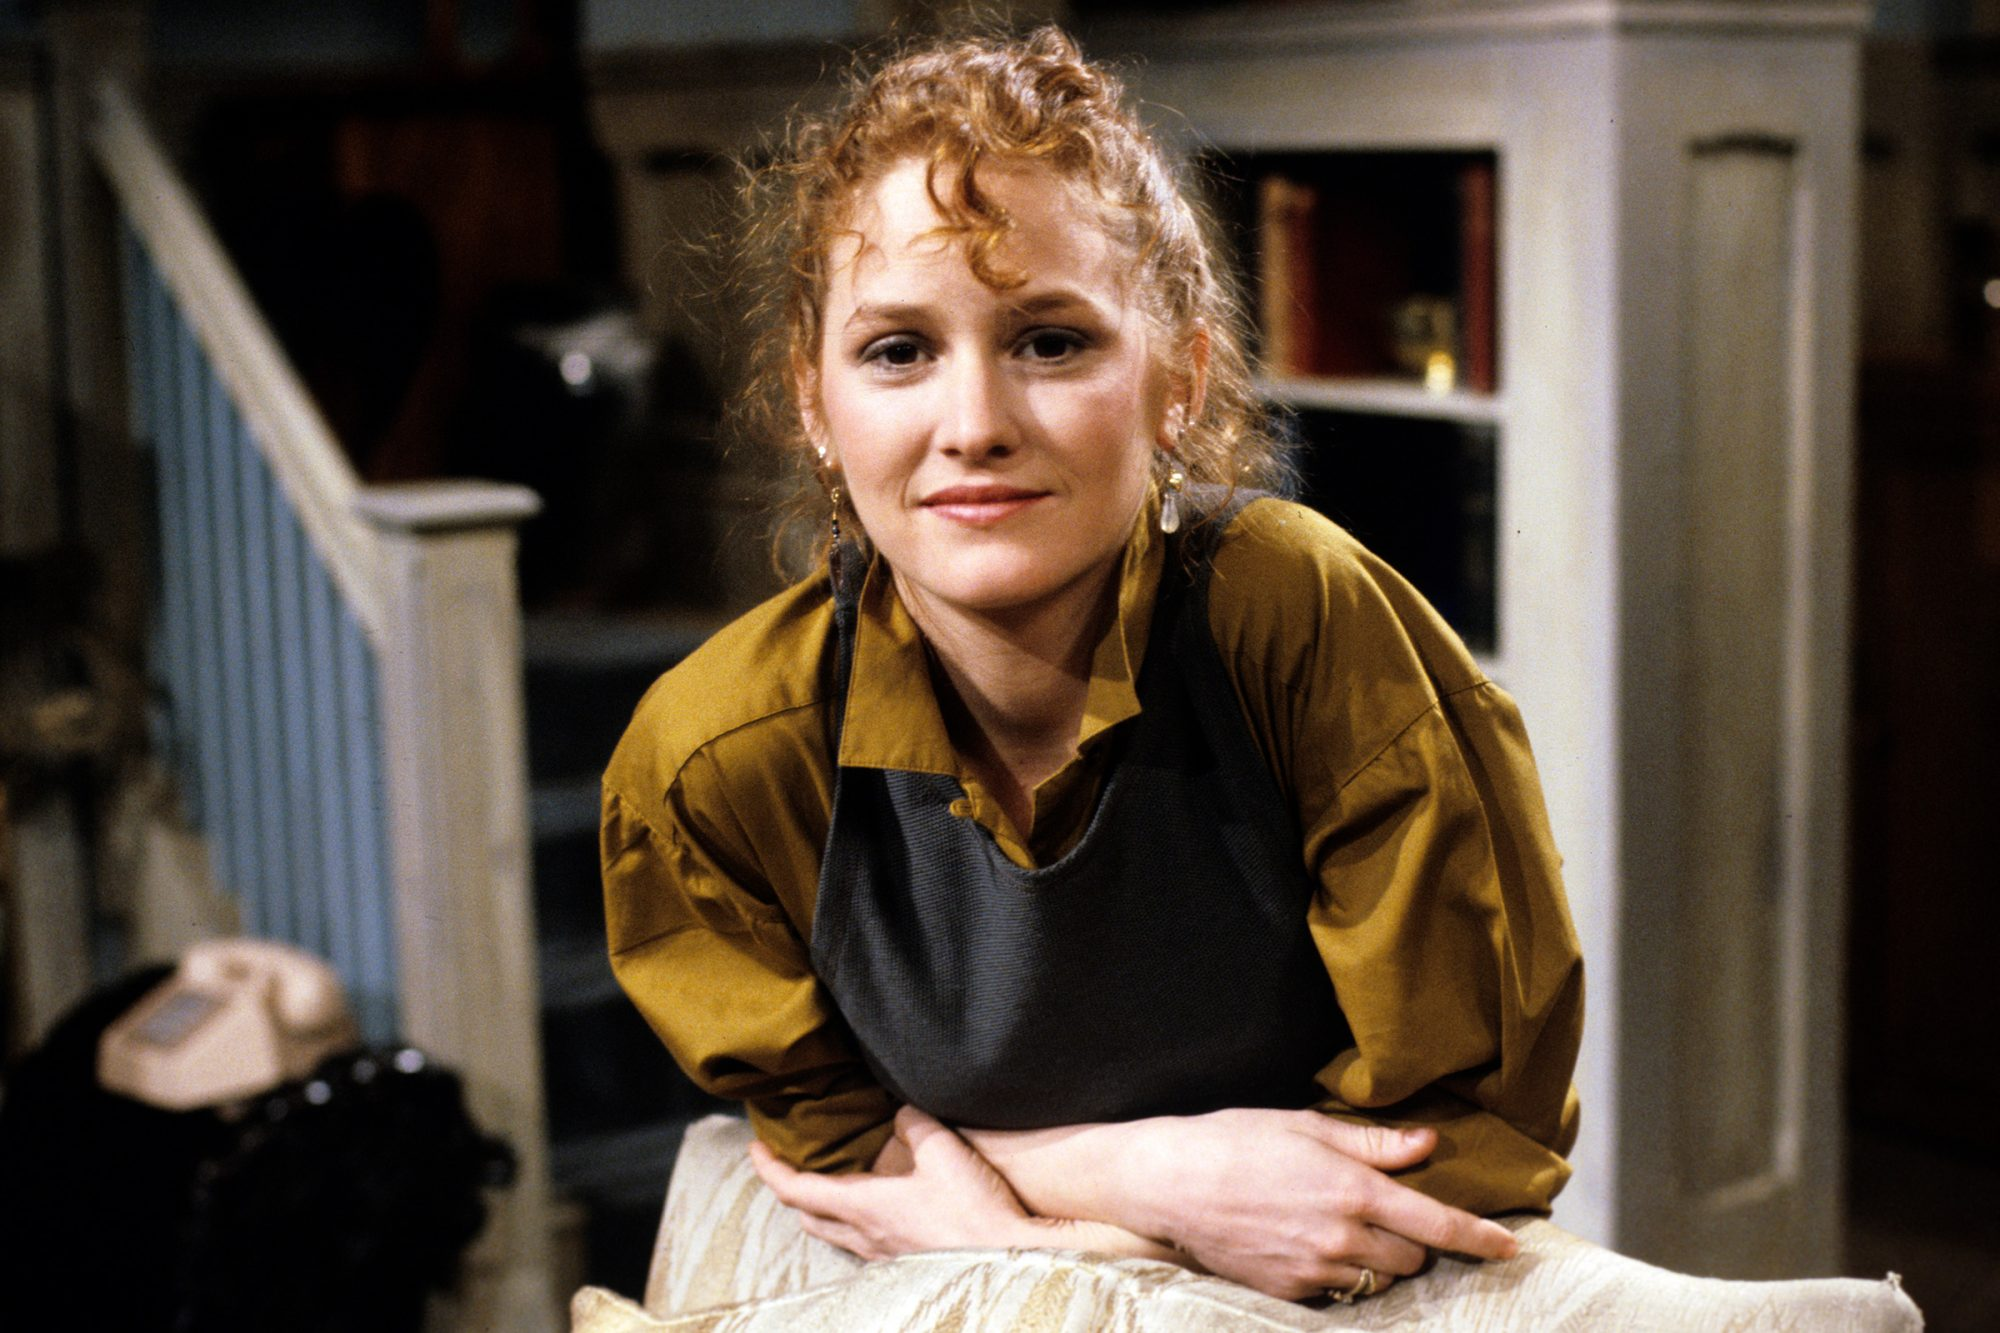 ALL MY CHILDREN Melissa Leo